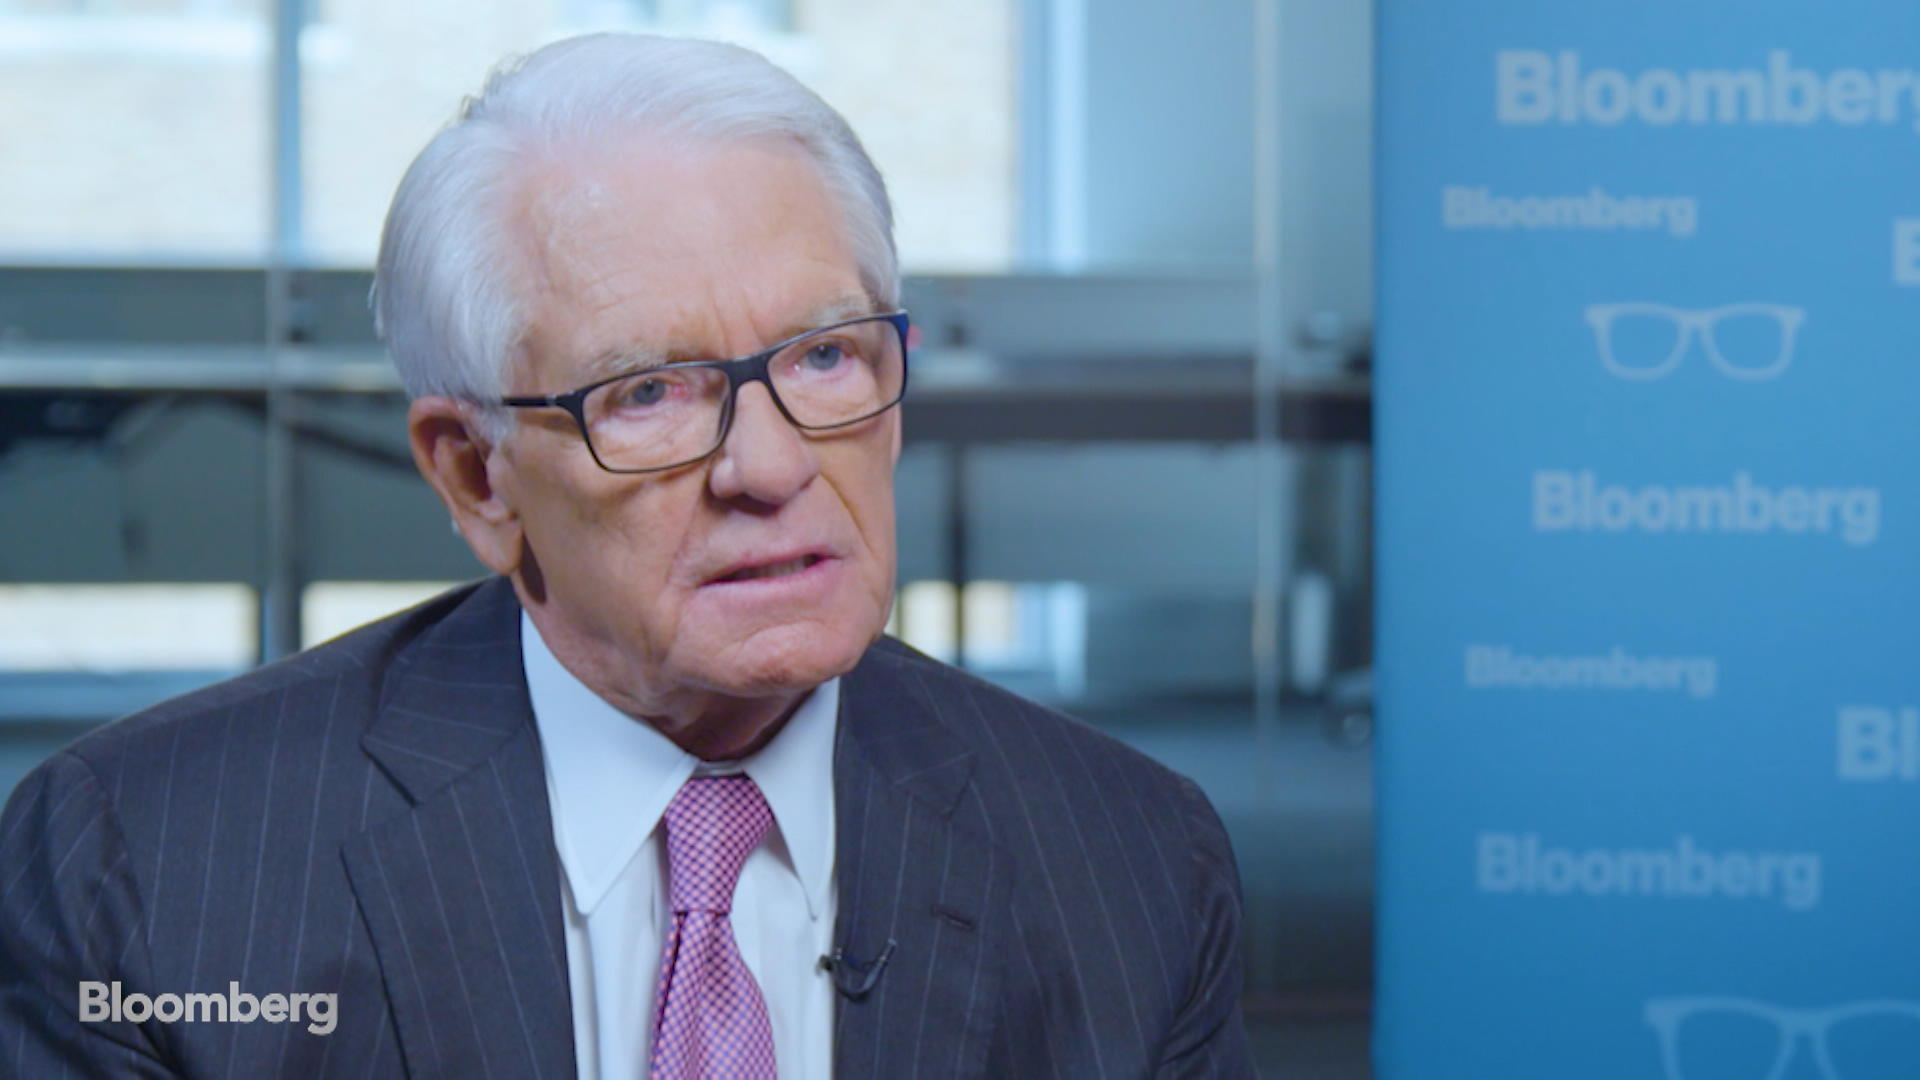 The David Rubenstein Show: Charles Schwab